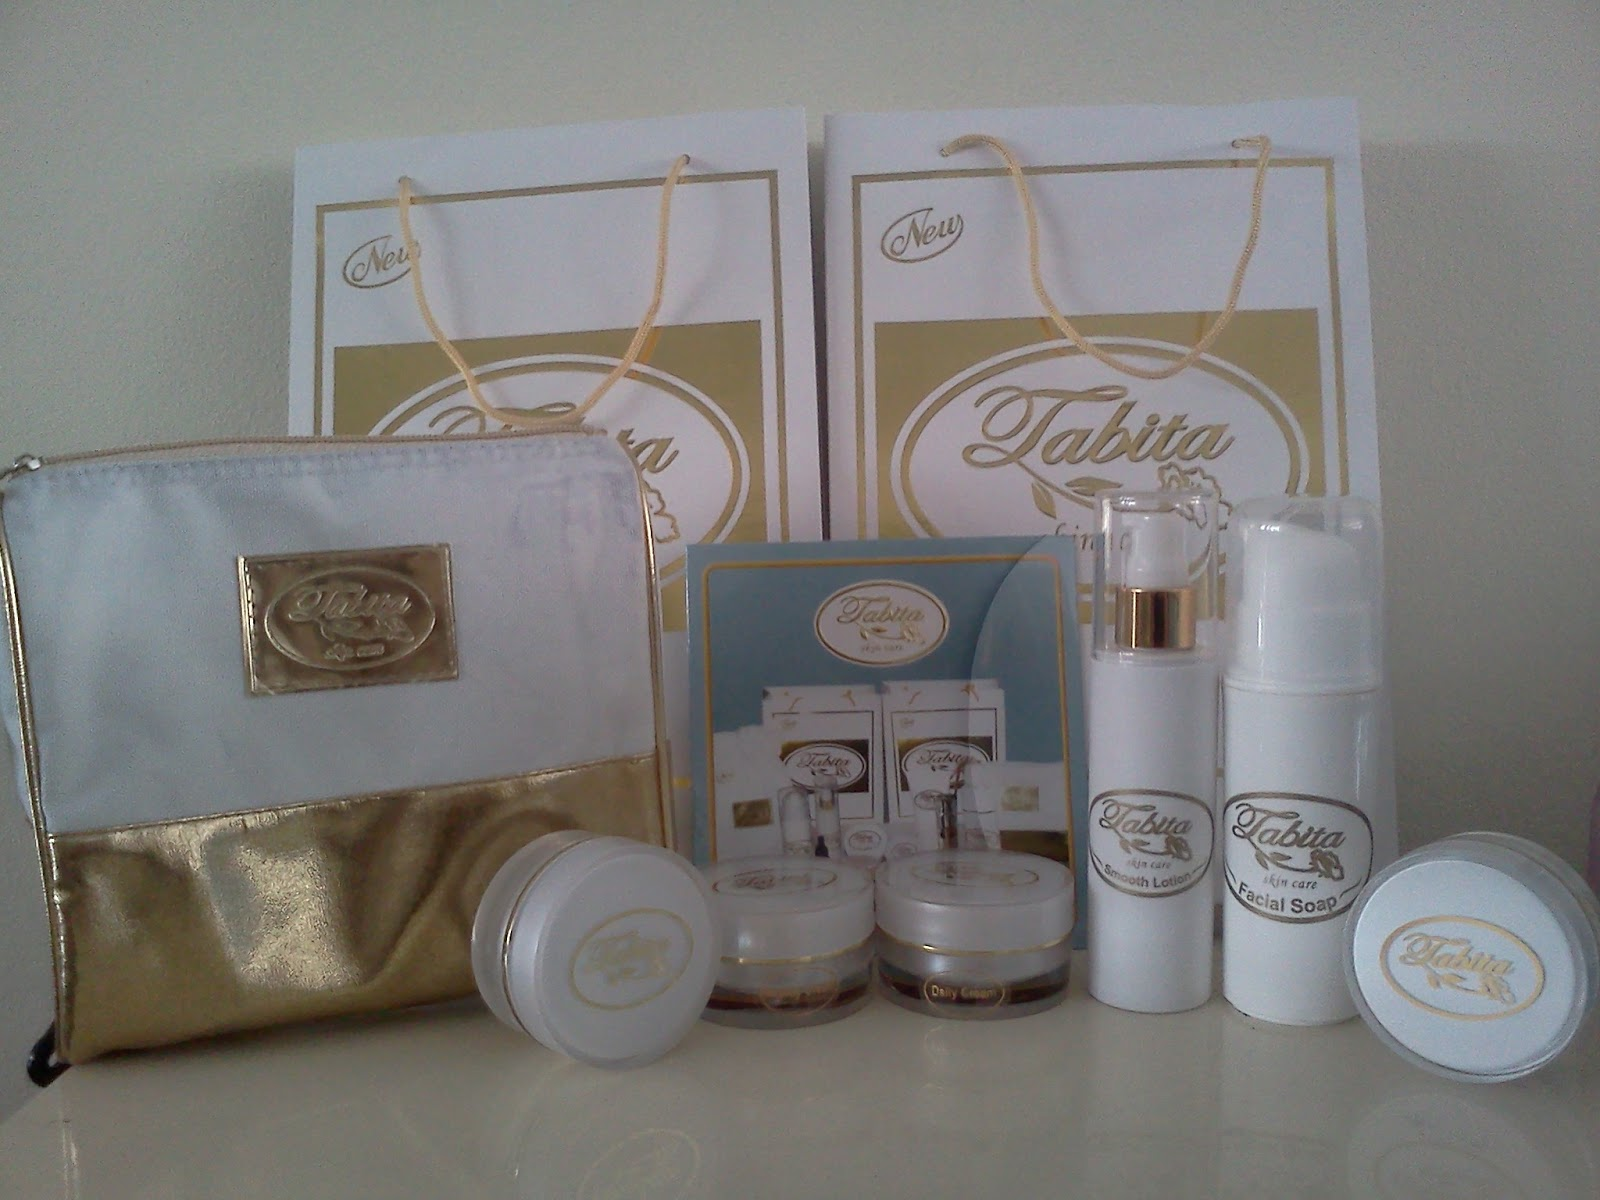 TABITA SKINCARE The Best Product For The Best Person Only